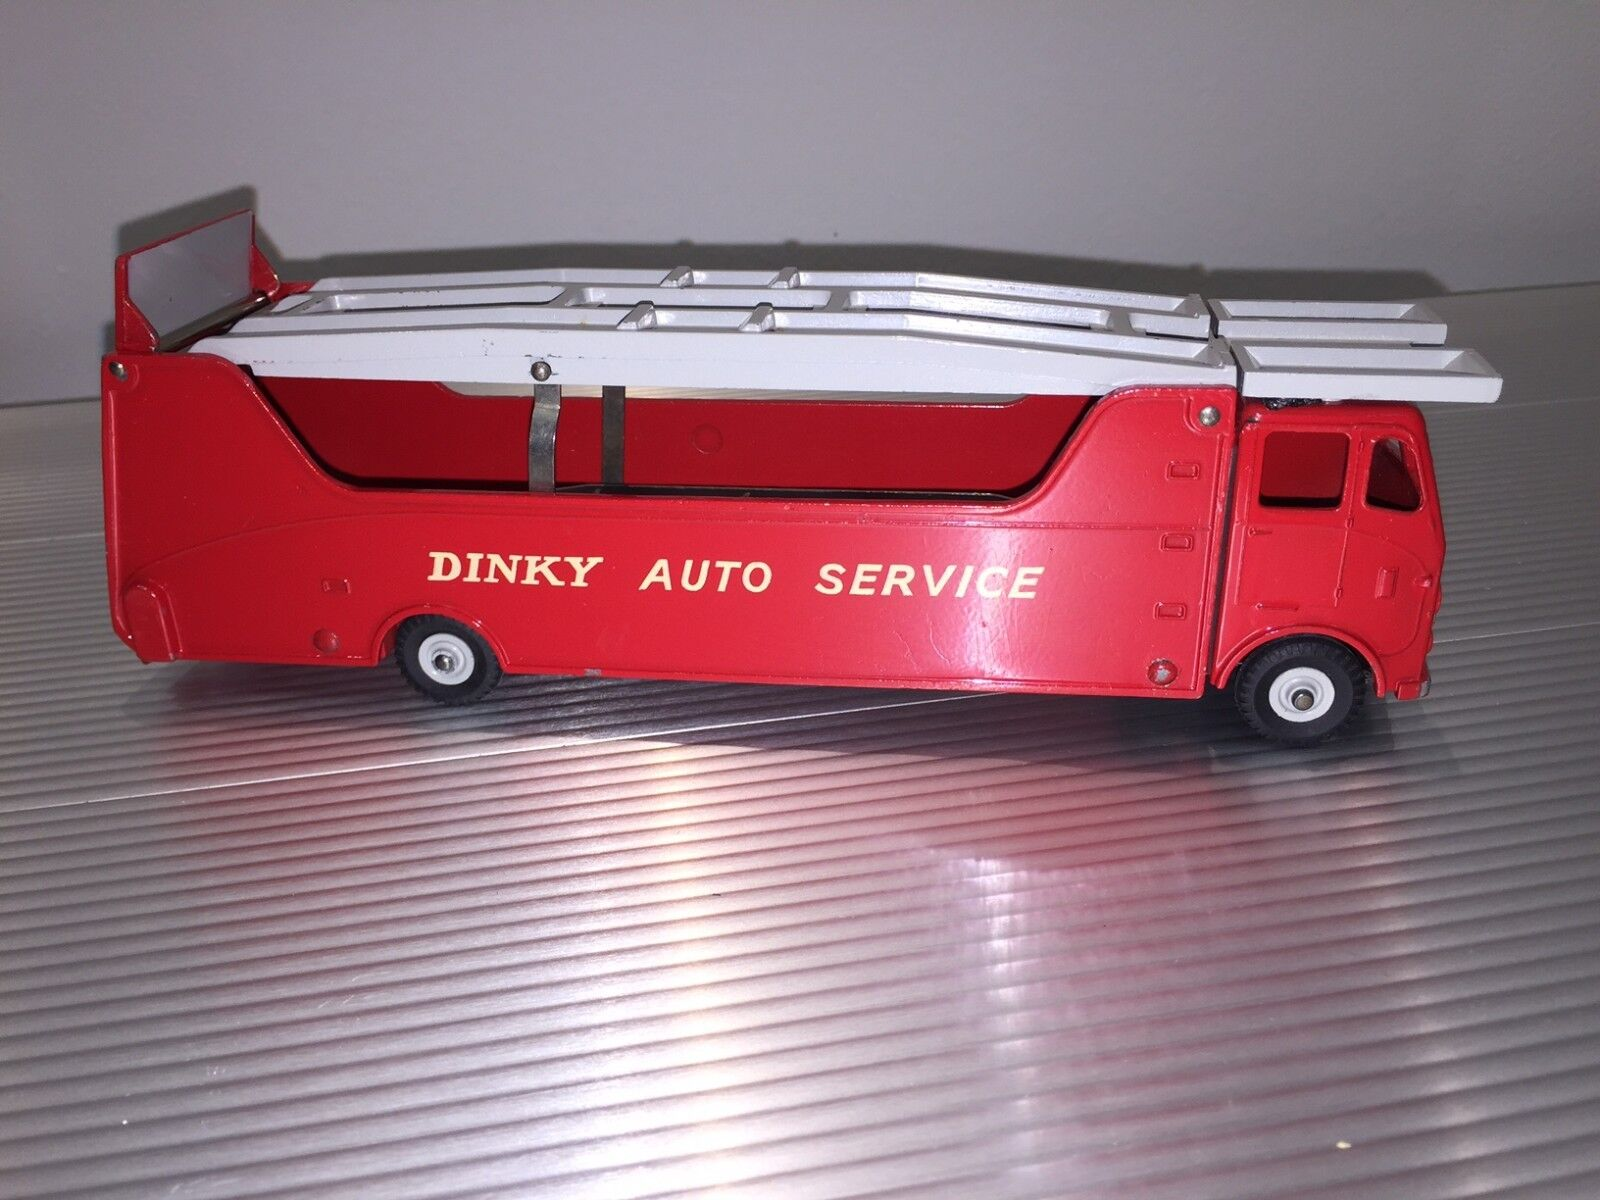 Vintage Dinky Supertoys MIB Dinky Auto Service Car Carrier No. 984